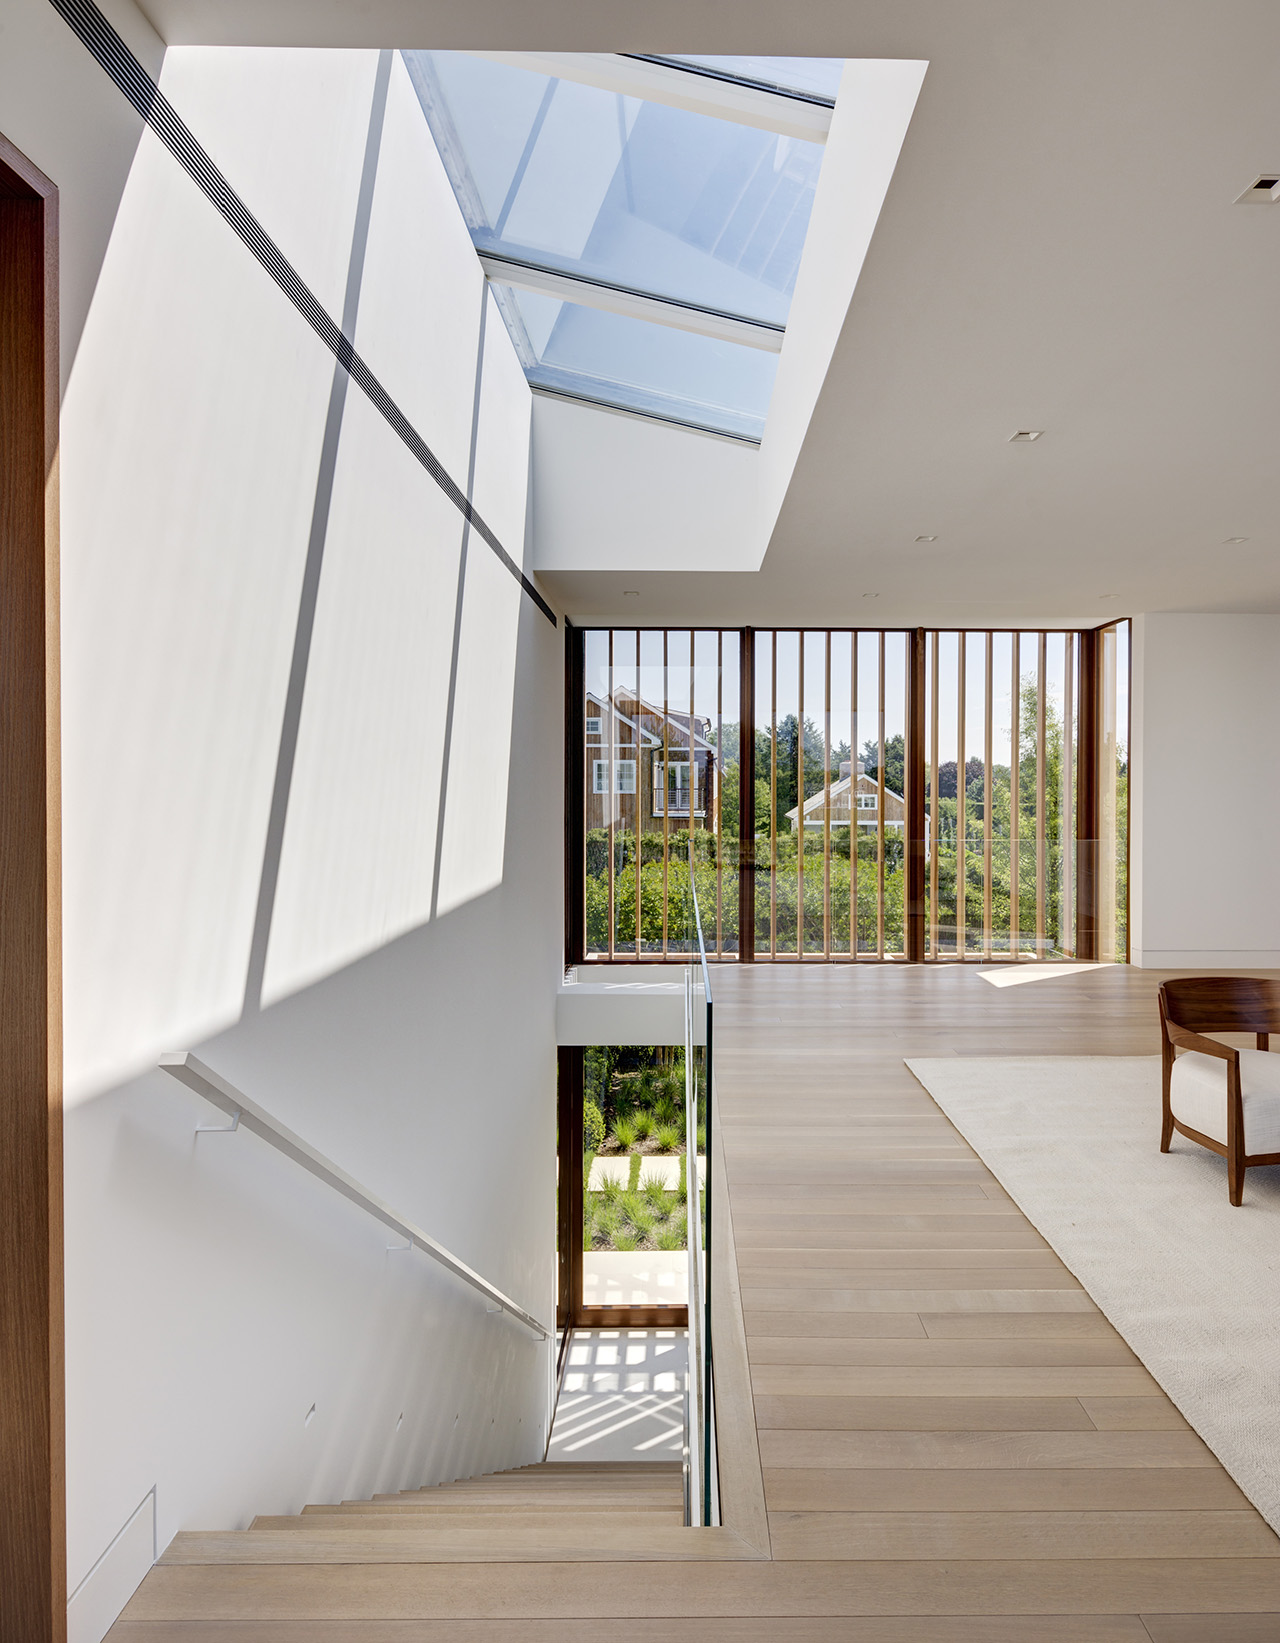 A large clearing on the upstairs landing serves as a comfortable gathering space.